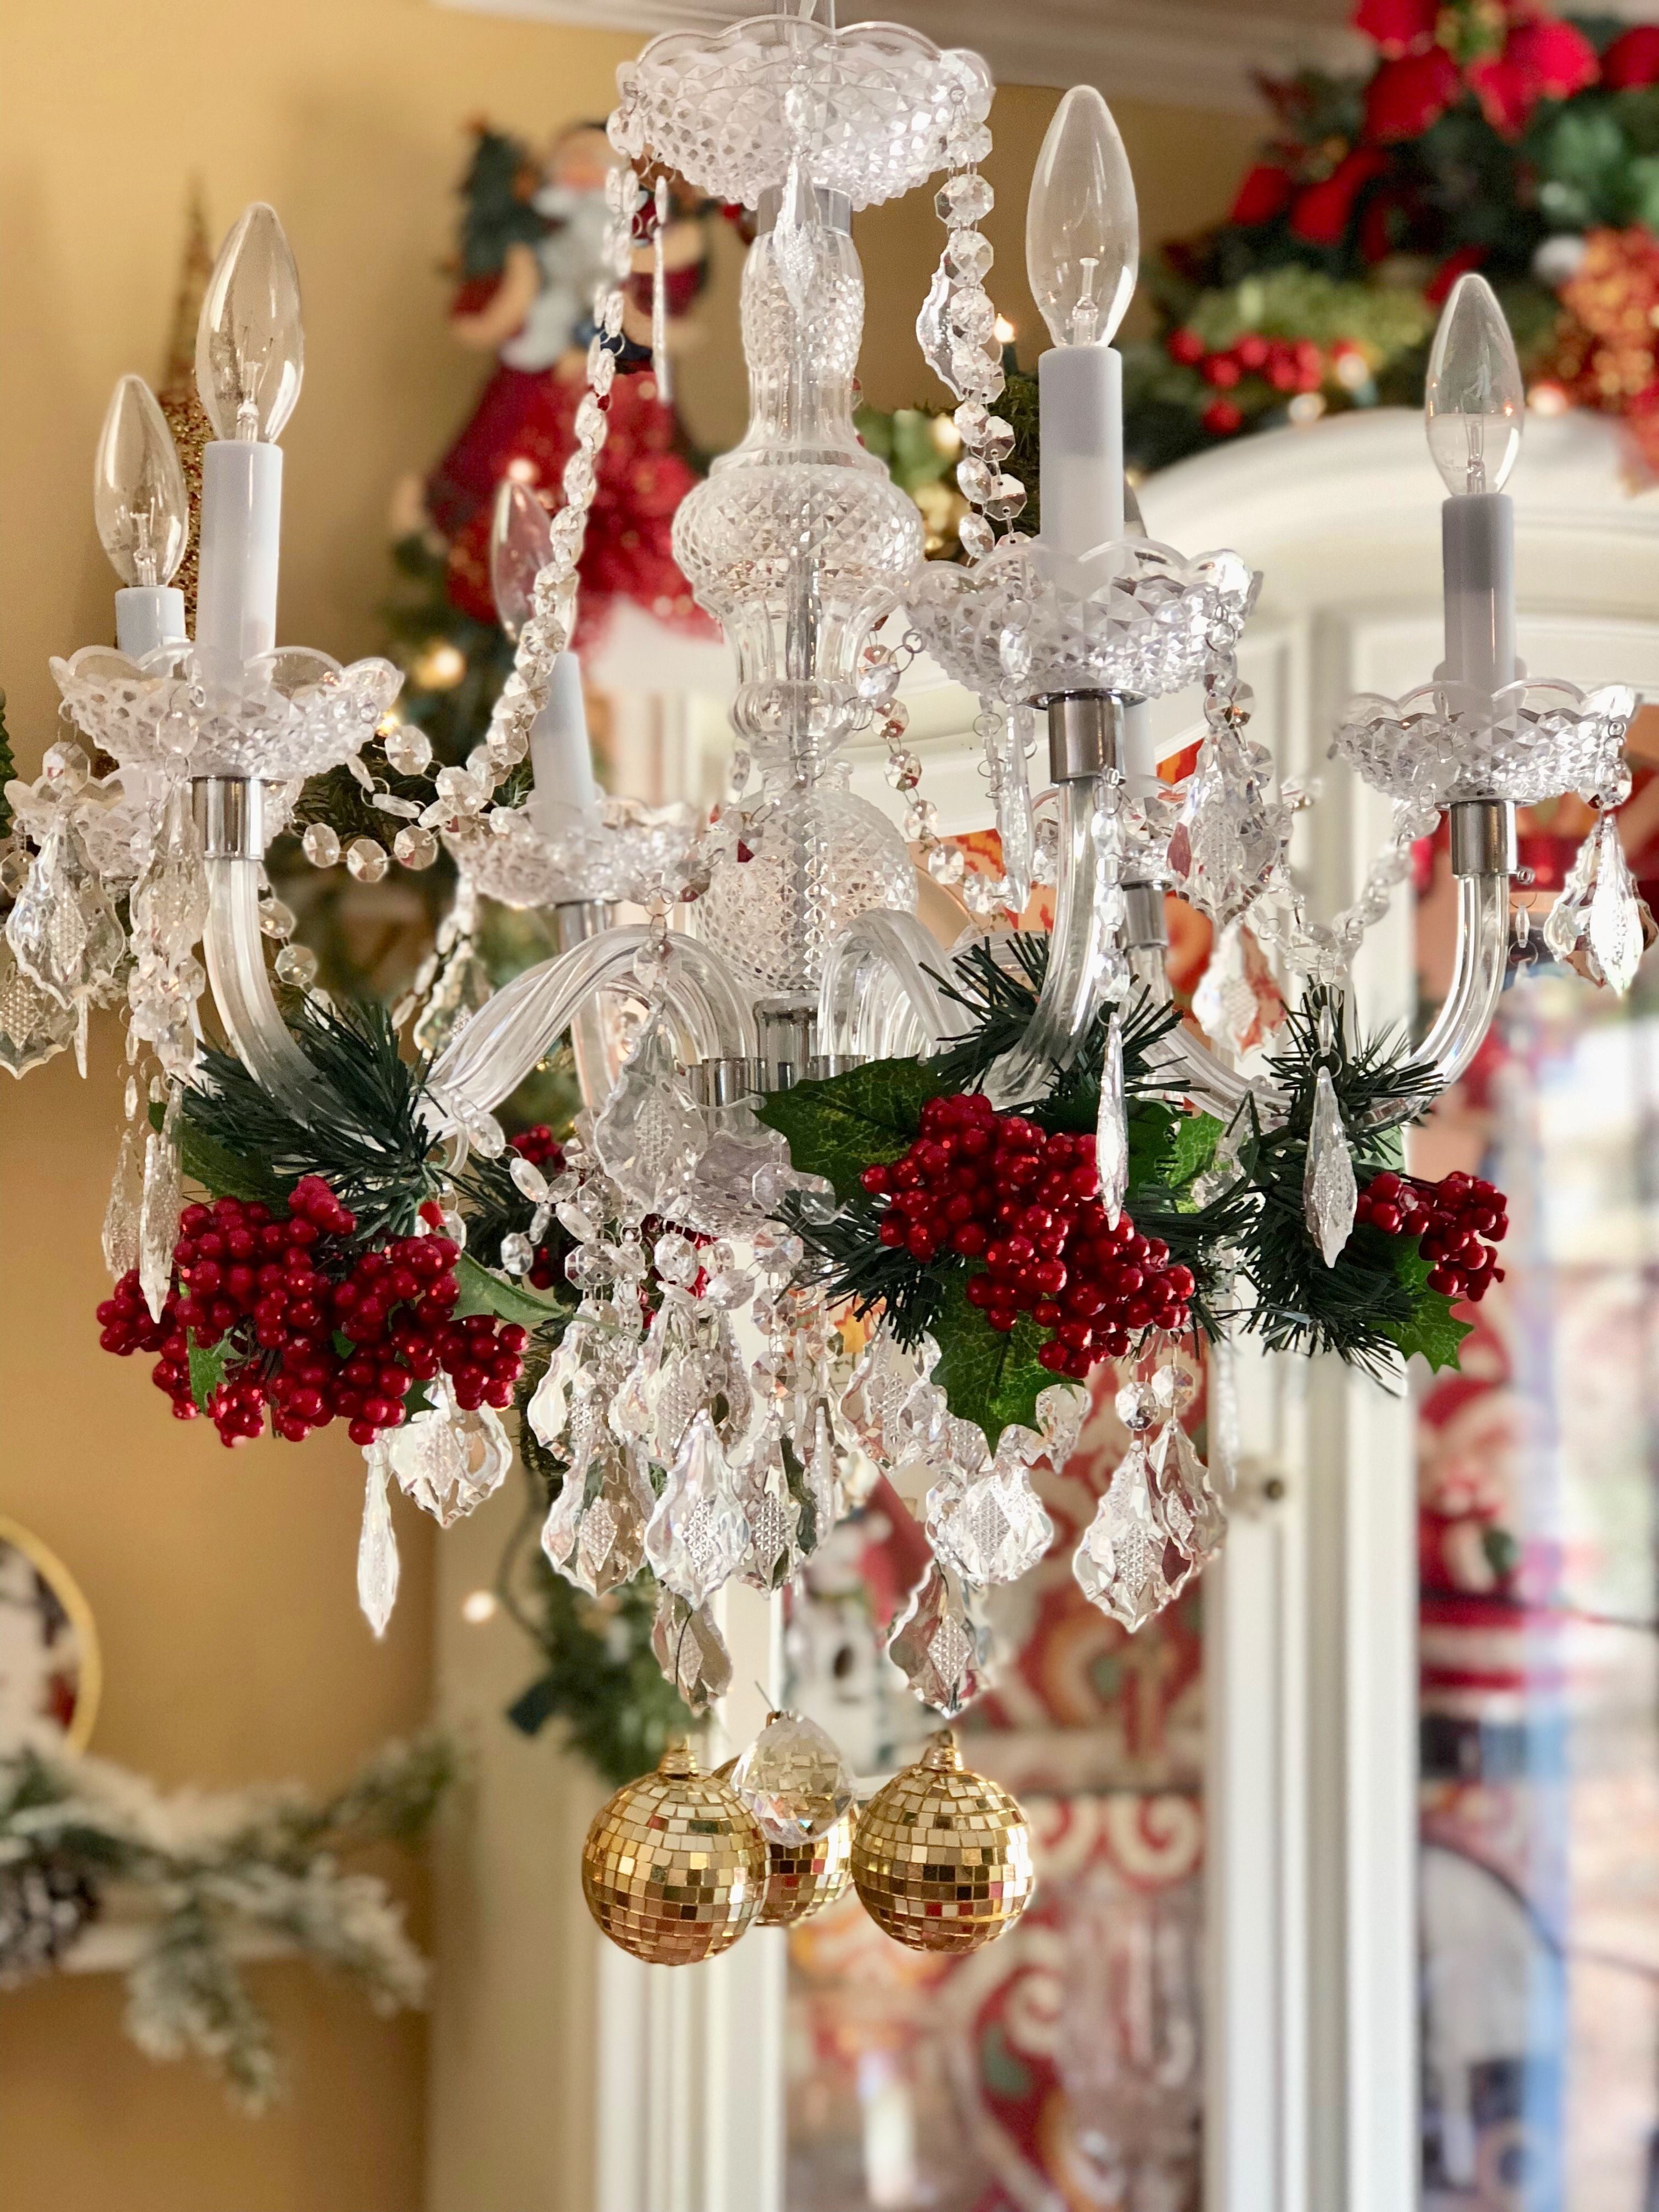 Stunning Holiday Decorating Ideas For Chandeliers Holiday Decor